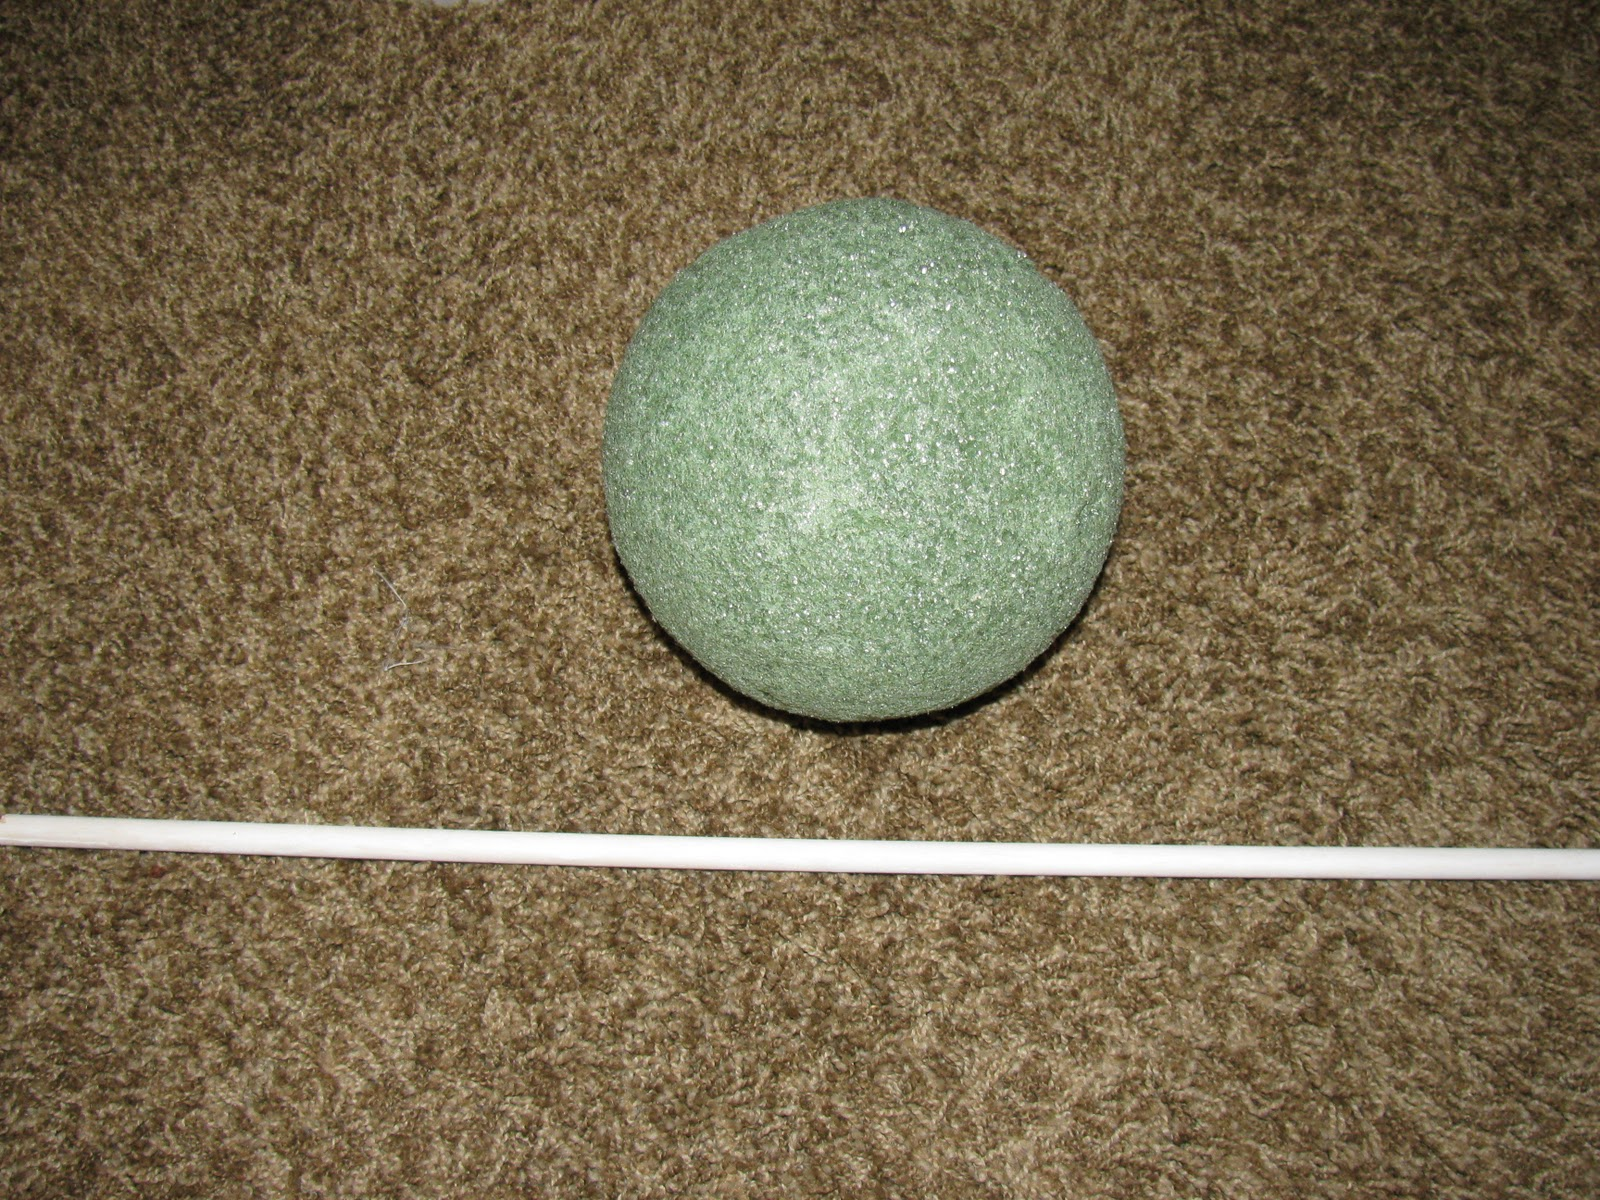 how to make a round ball